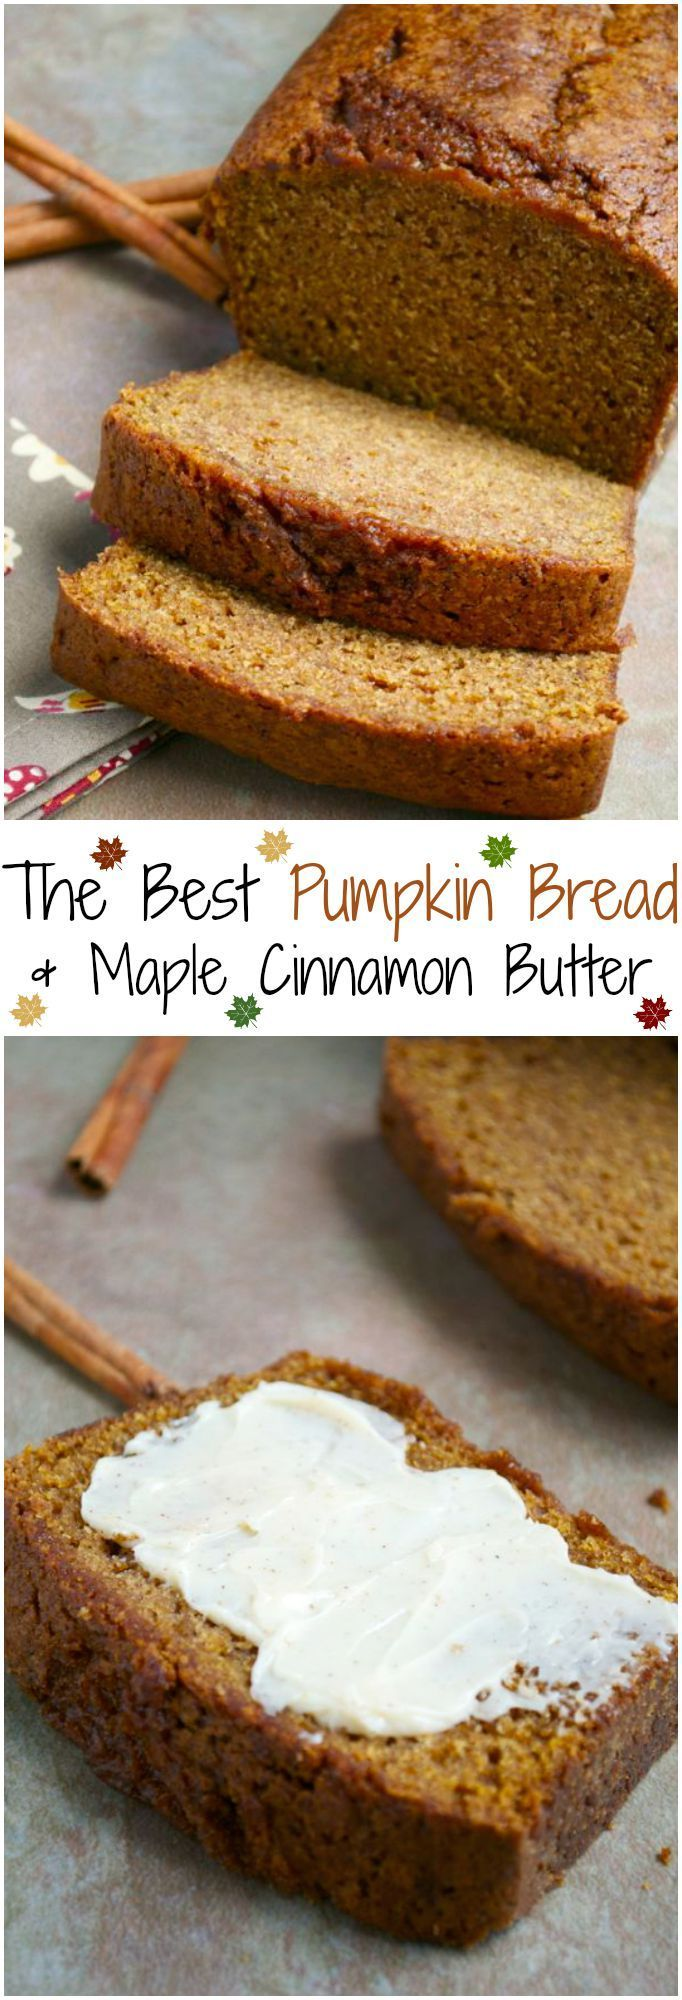 Super Moist Pumpkin Bread -   24 sweet pumpkin recipes